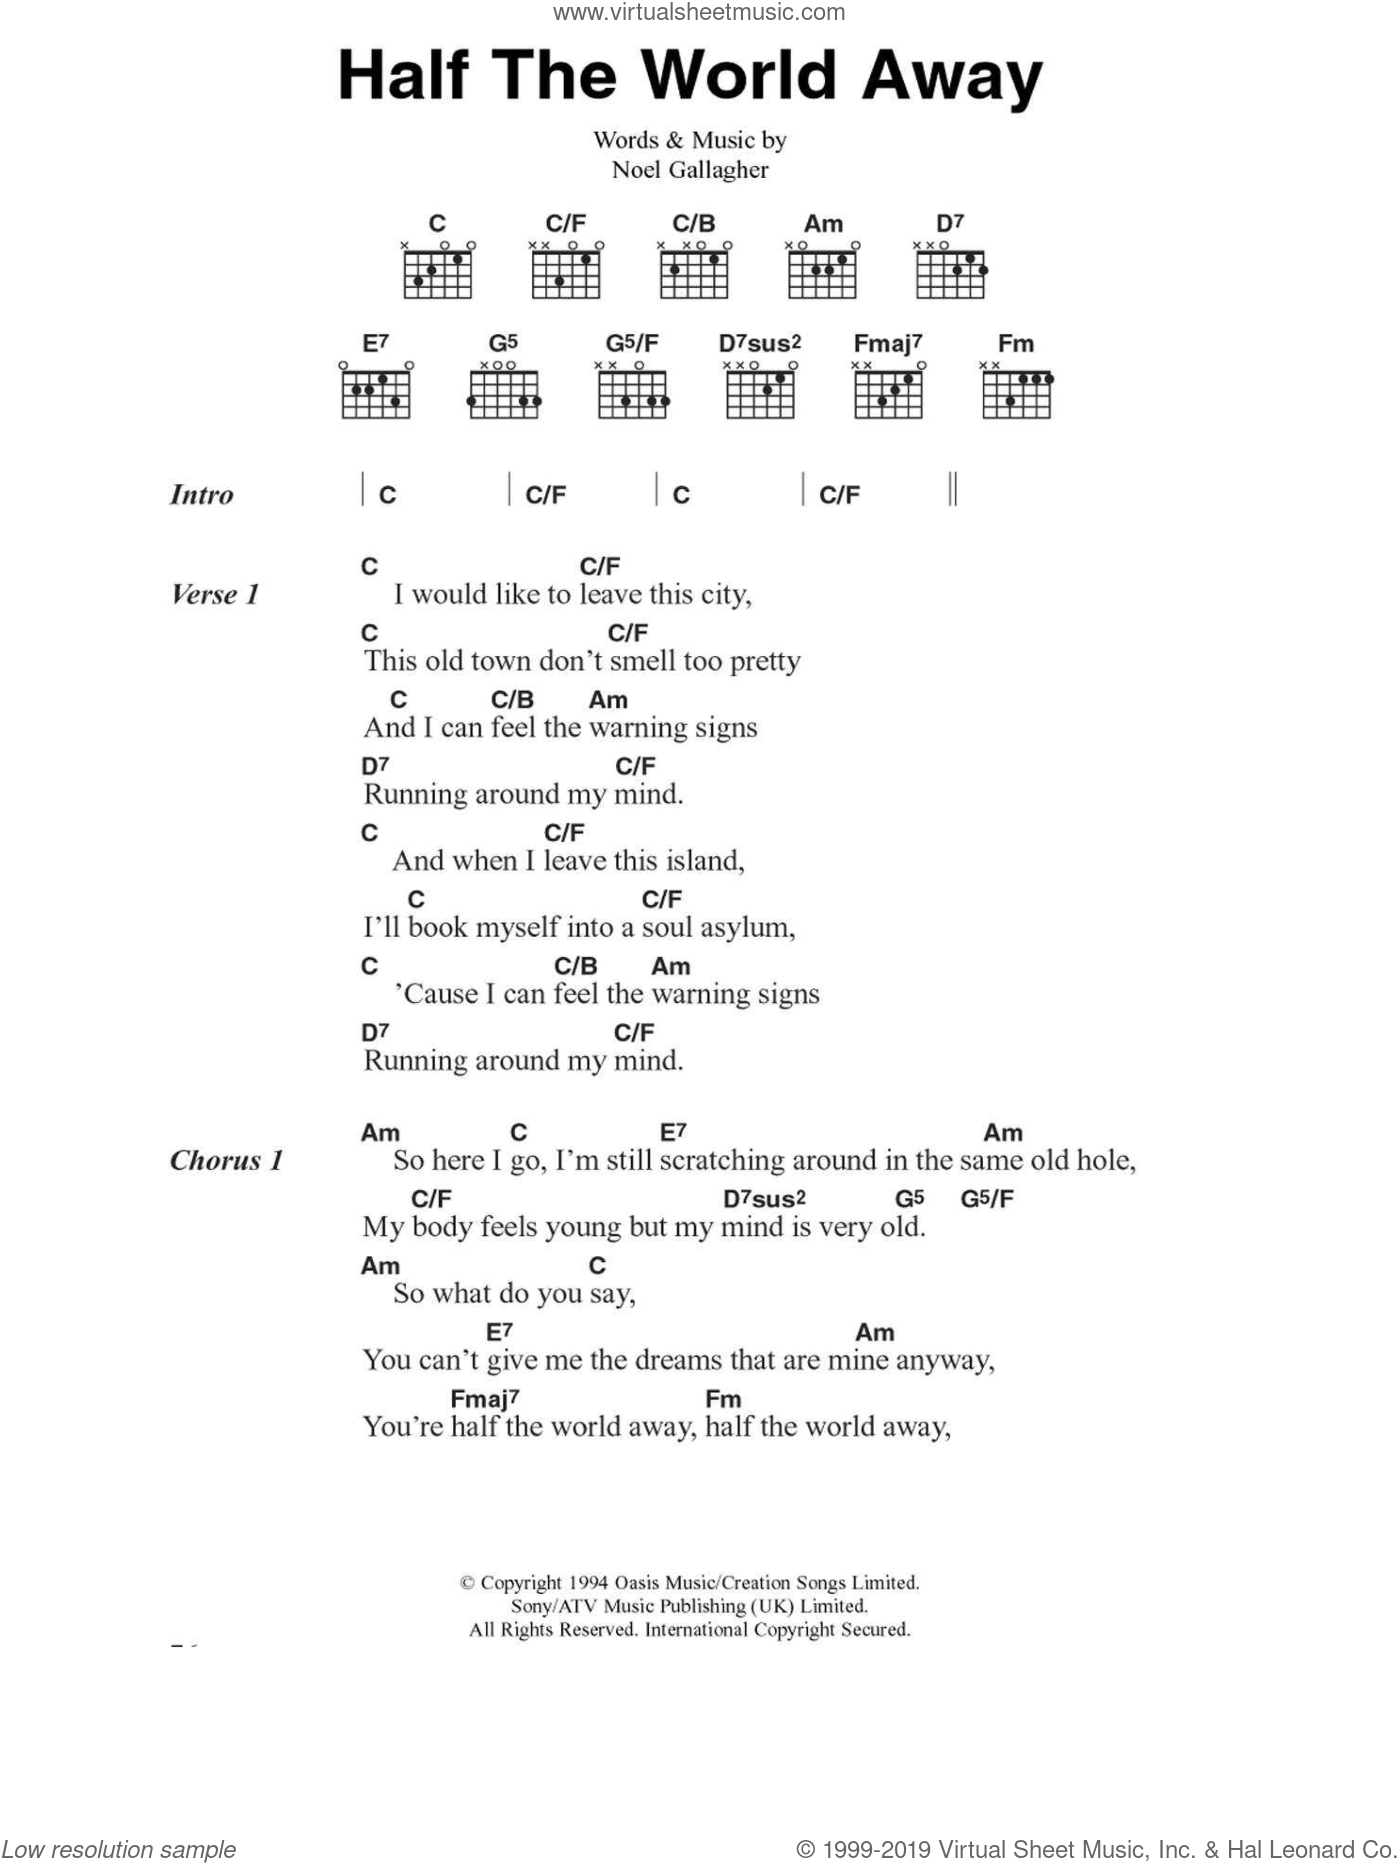 Half The World Away sheet music for guitar (chords, lyrics, melody) by Noel Gallagher